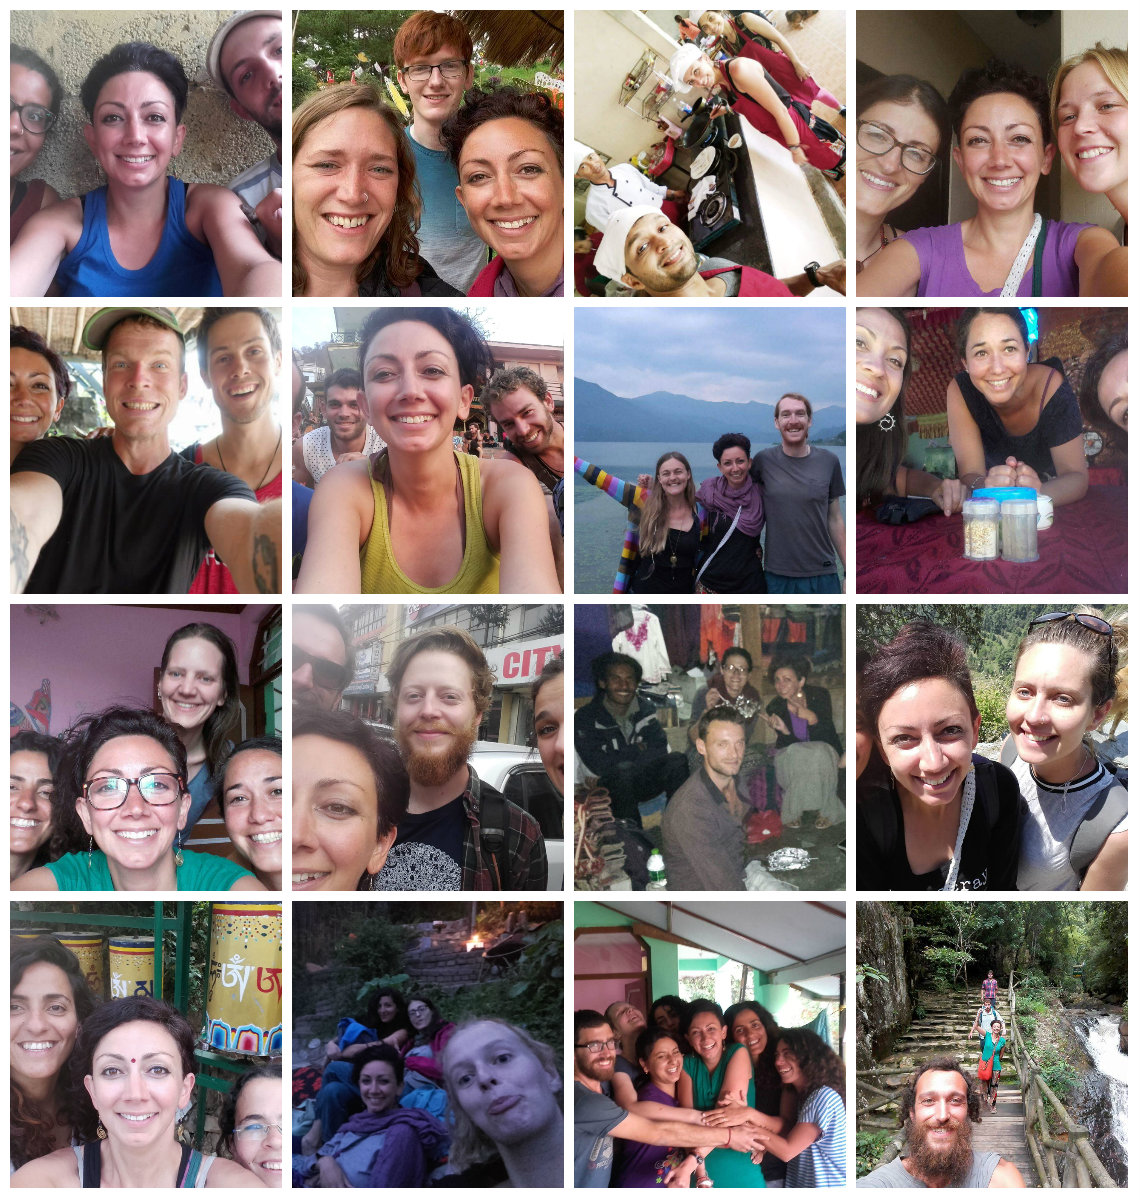 Whenever you're scared of travelling solo - please, take a look at all the happy faces of us 'poor, lonely, scared' solo travellers, out in this horrid, cruel world AND GO GET THAT FREAKIN' TICKET!